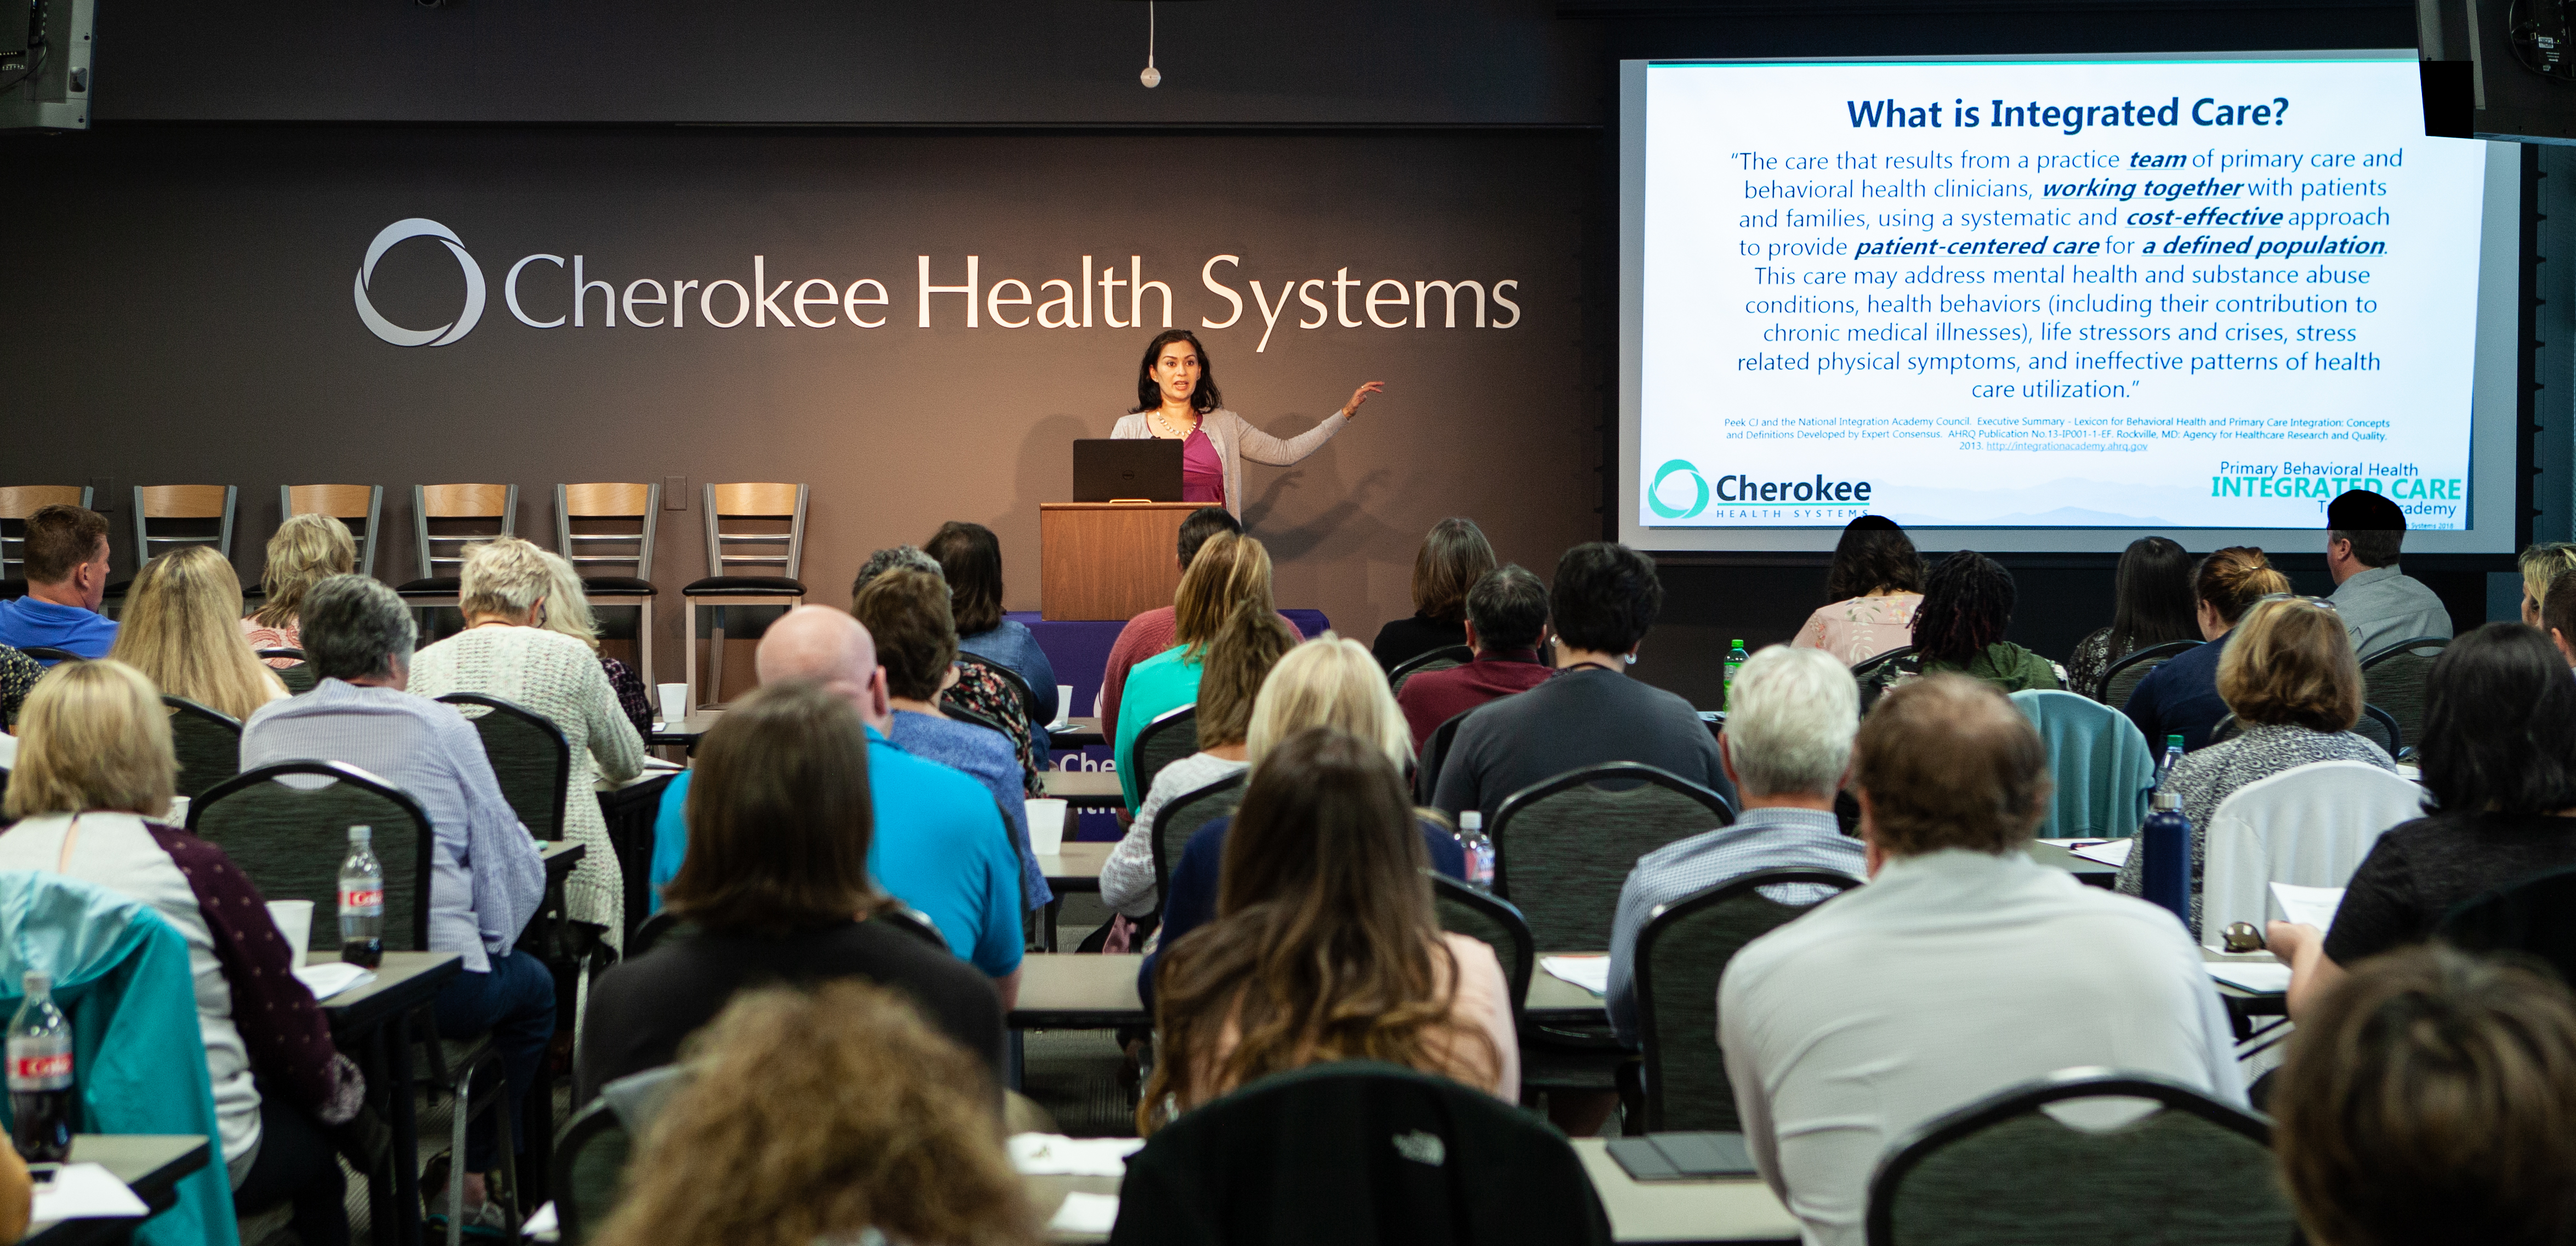 East Tennessee Clinics For The Poor Become World Leaders In Whole